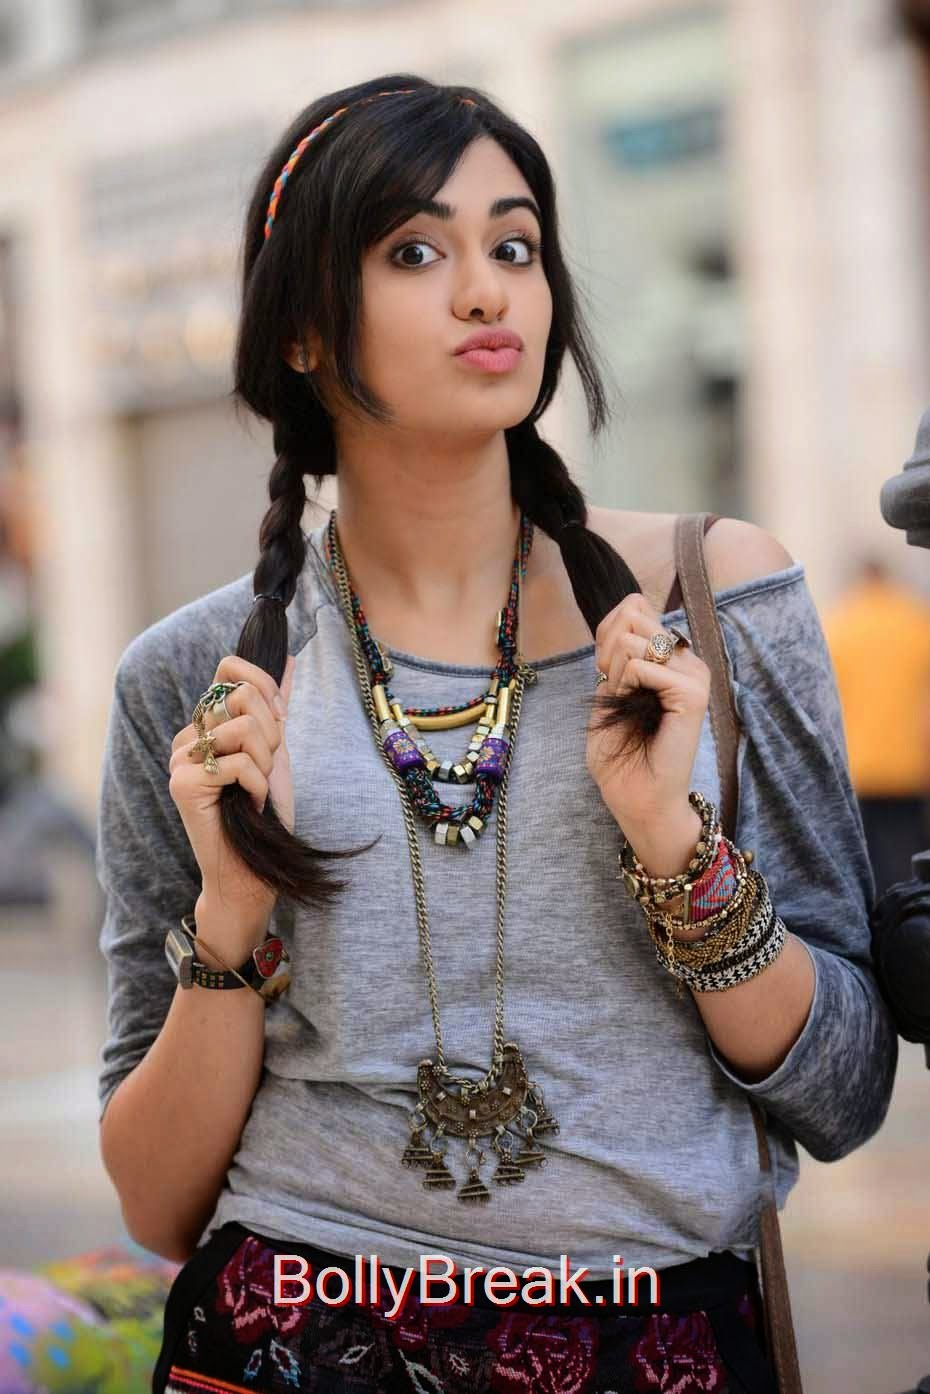 Adah Sharma Photo Gallery with no Watermarks, Adah Sharma Hot Pics In Grey and White Top